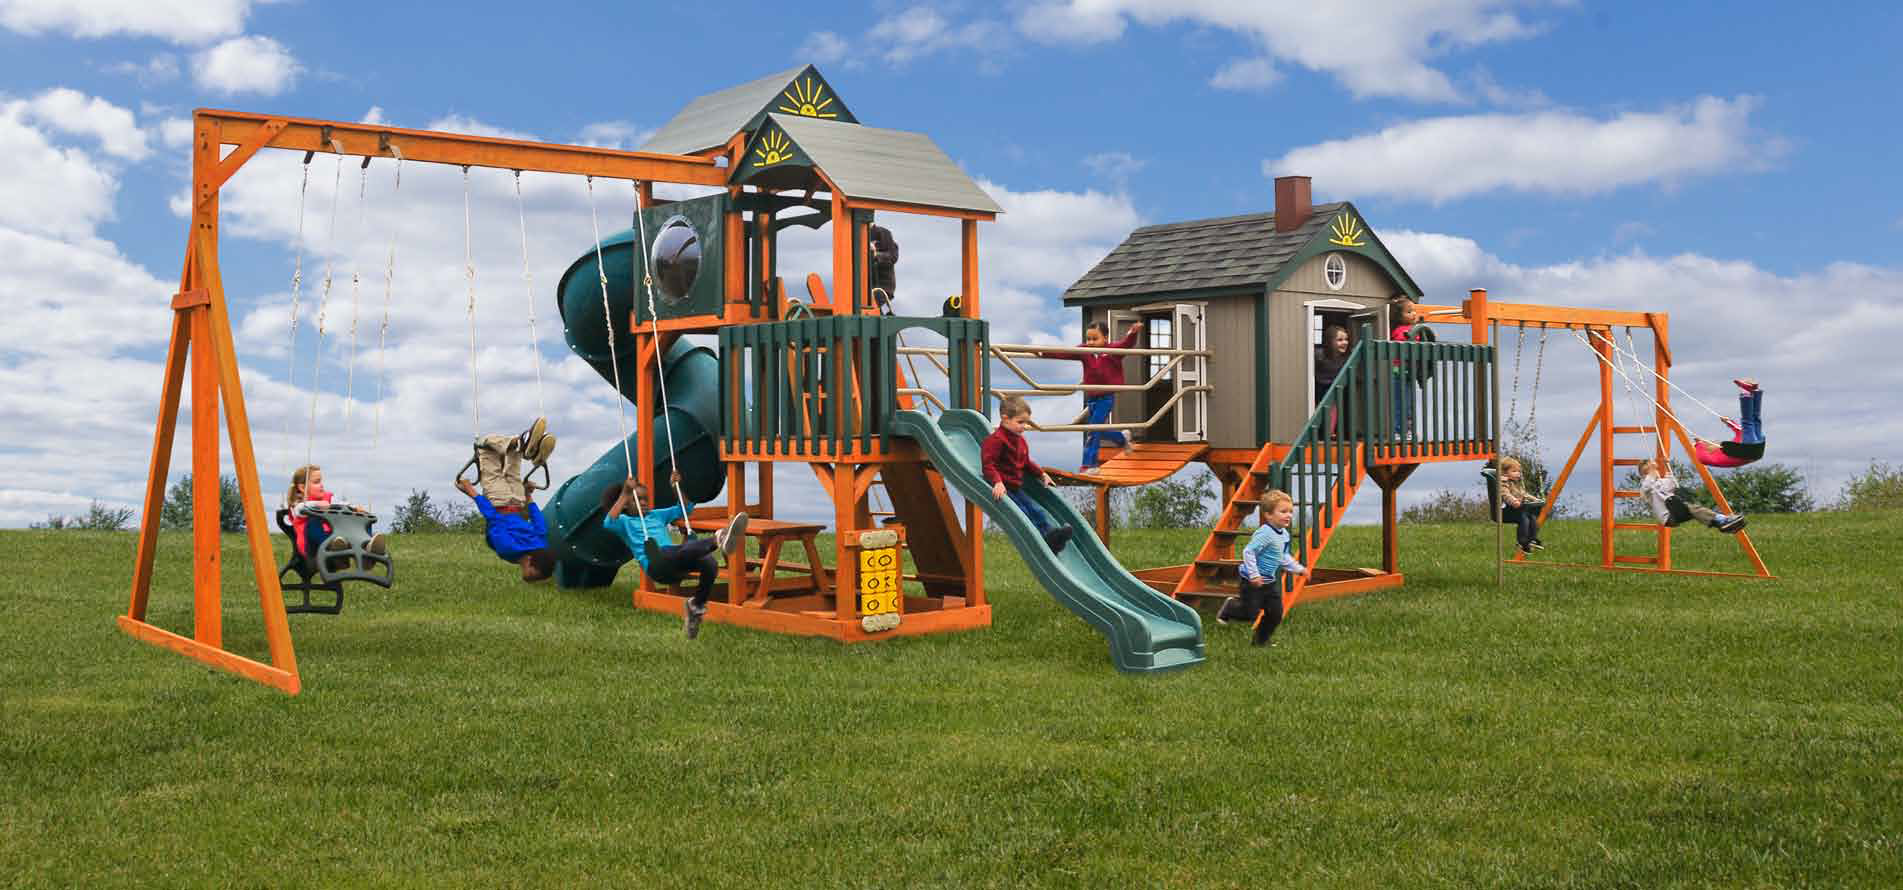 Handcrafted Swing Sets Amp Playsets Pine Creek Structures